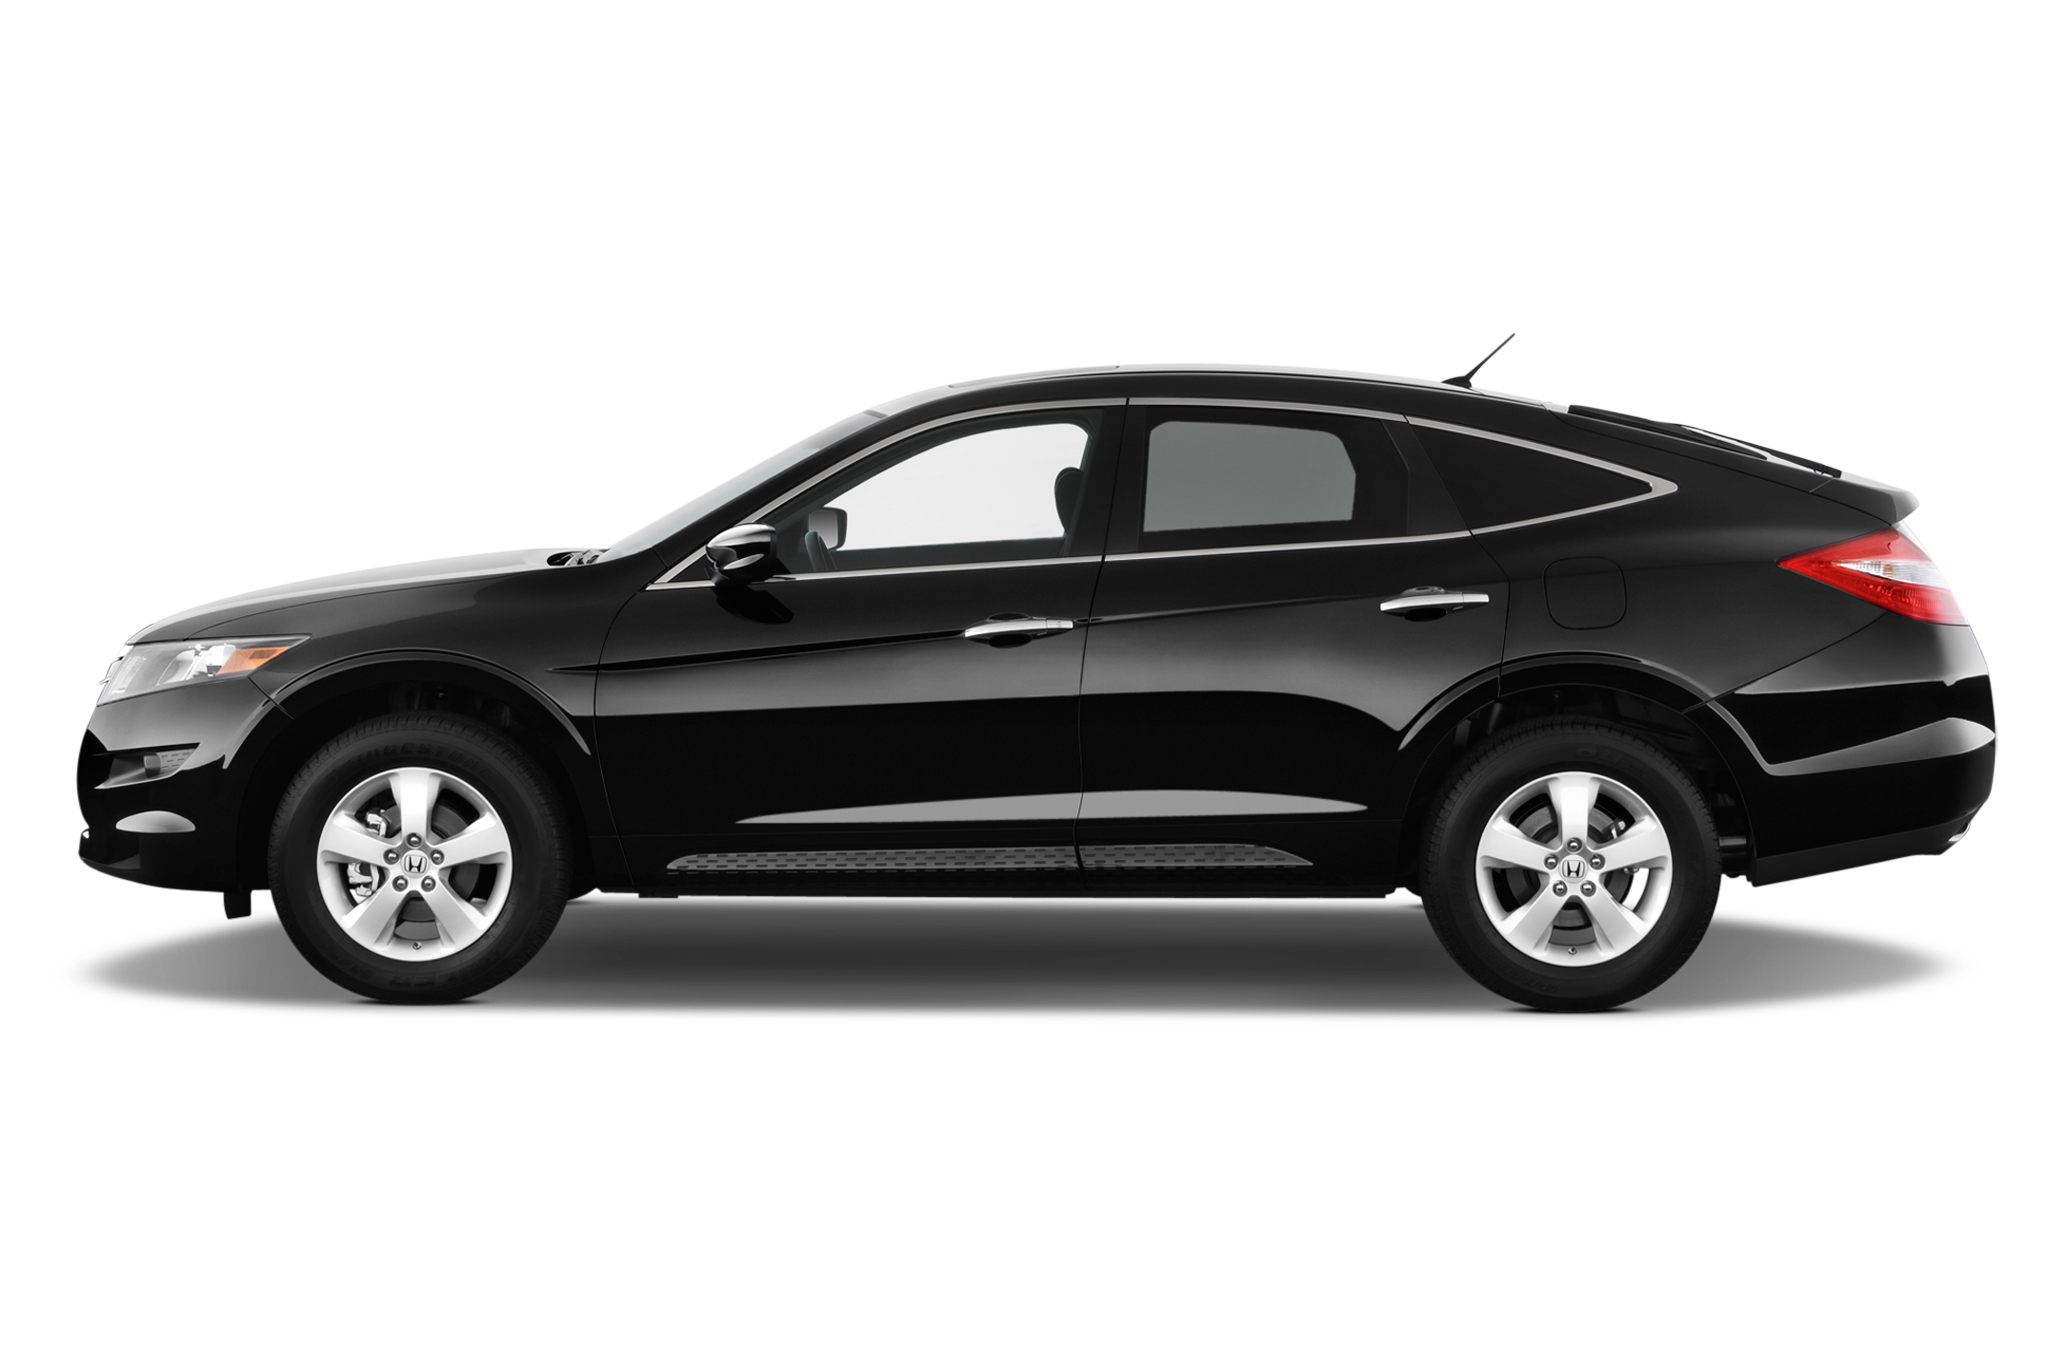 Honda Crosstour I 2009 - 2012 SUV 5 door #2